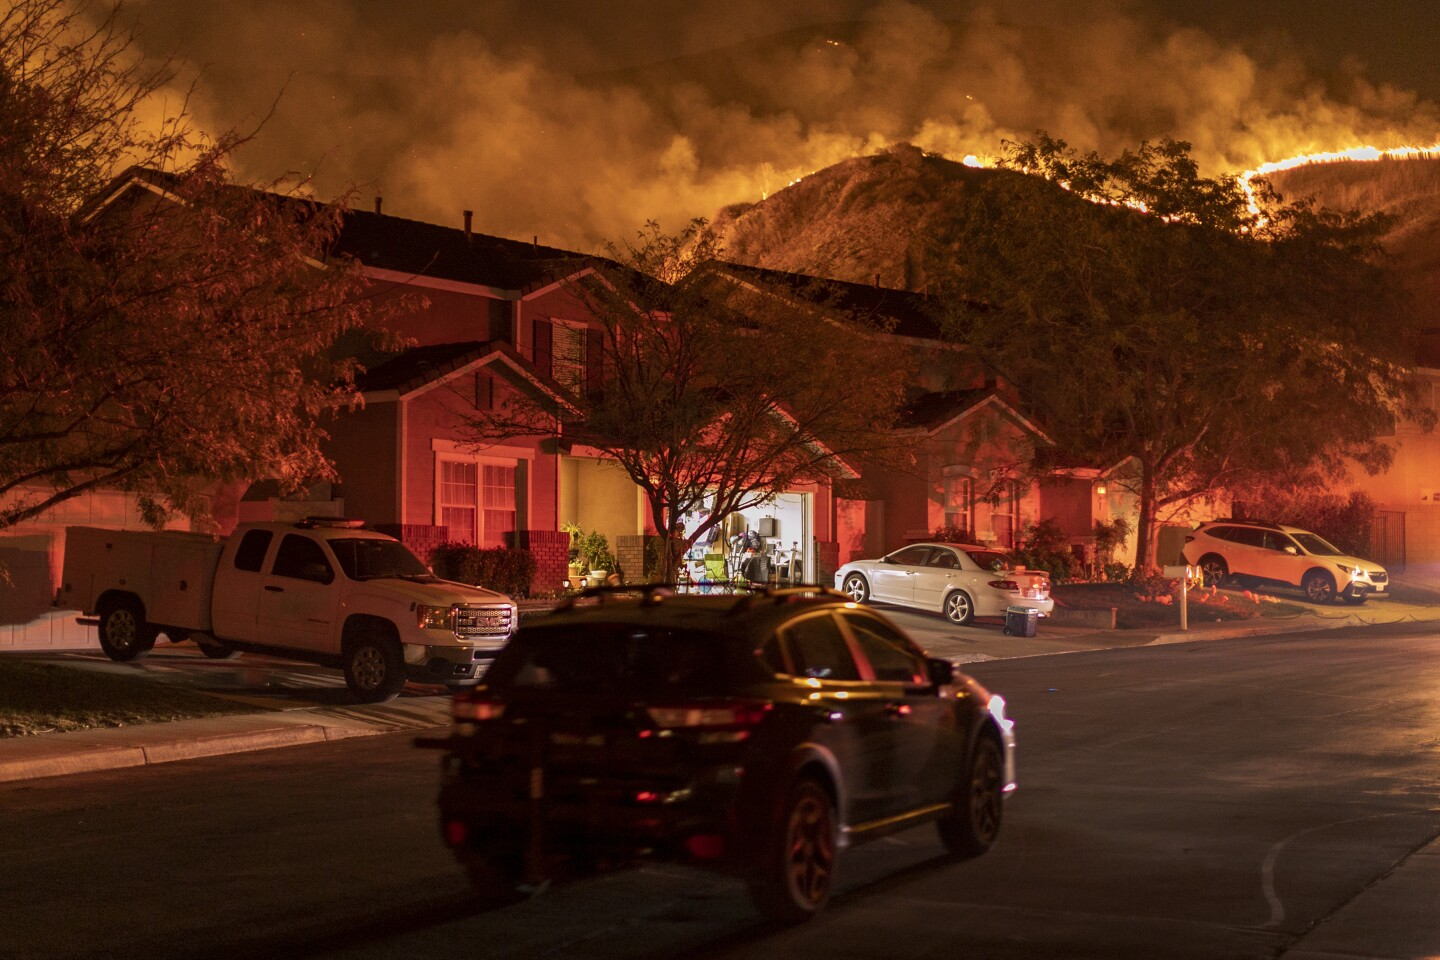 A neighborhood where heavy smoke and flames are heading over the ridge line has cars in driveways and one open garage.